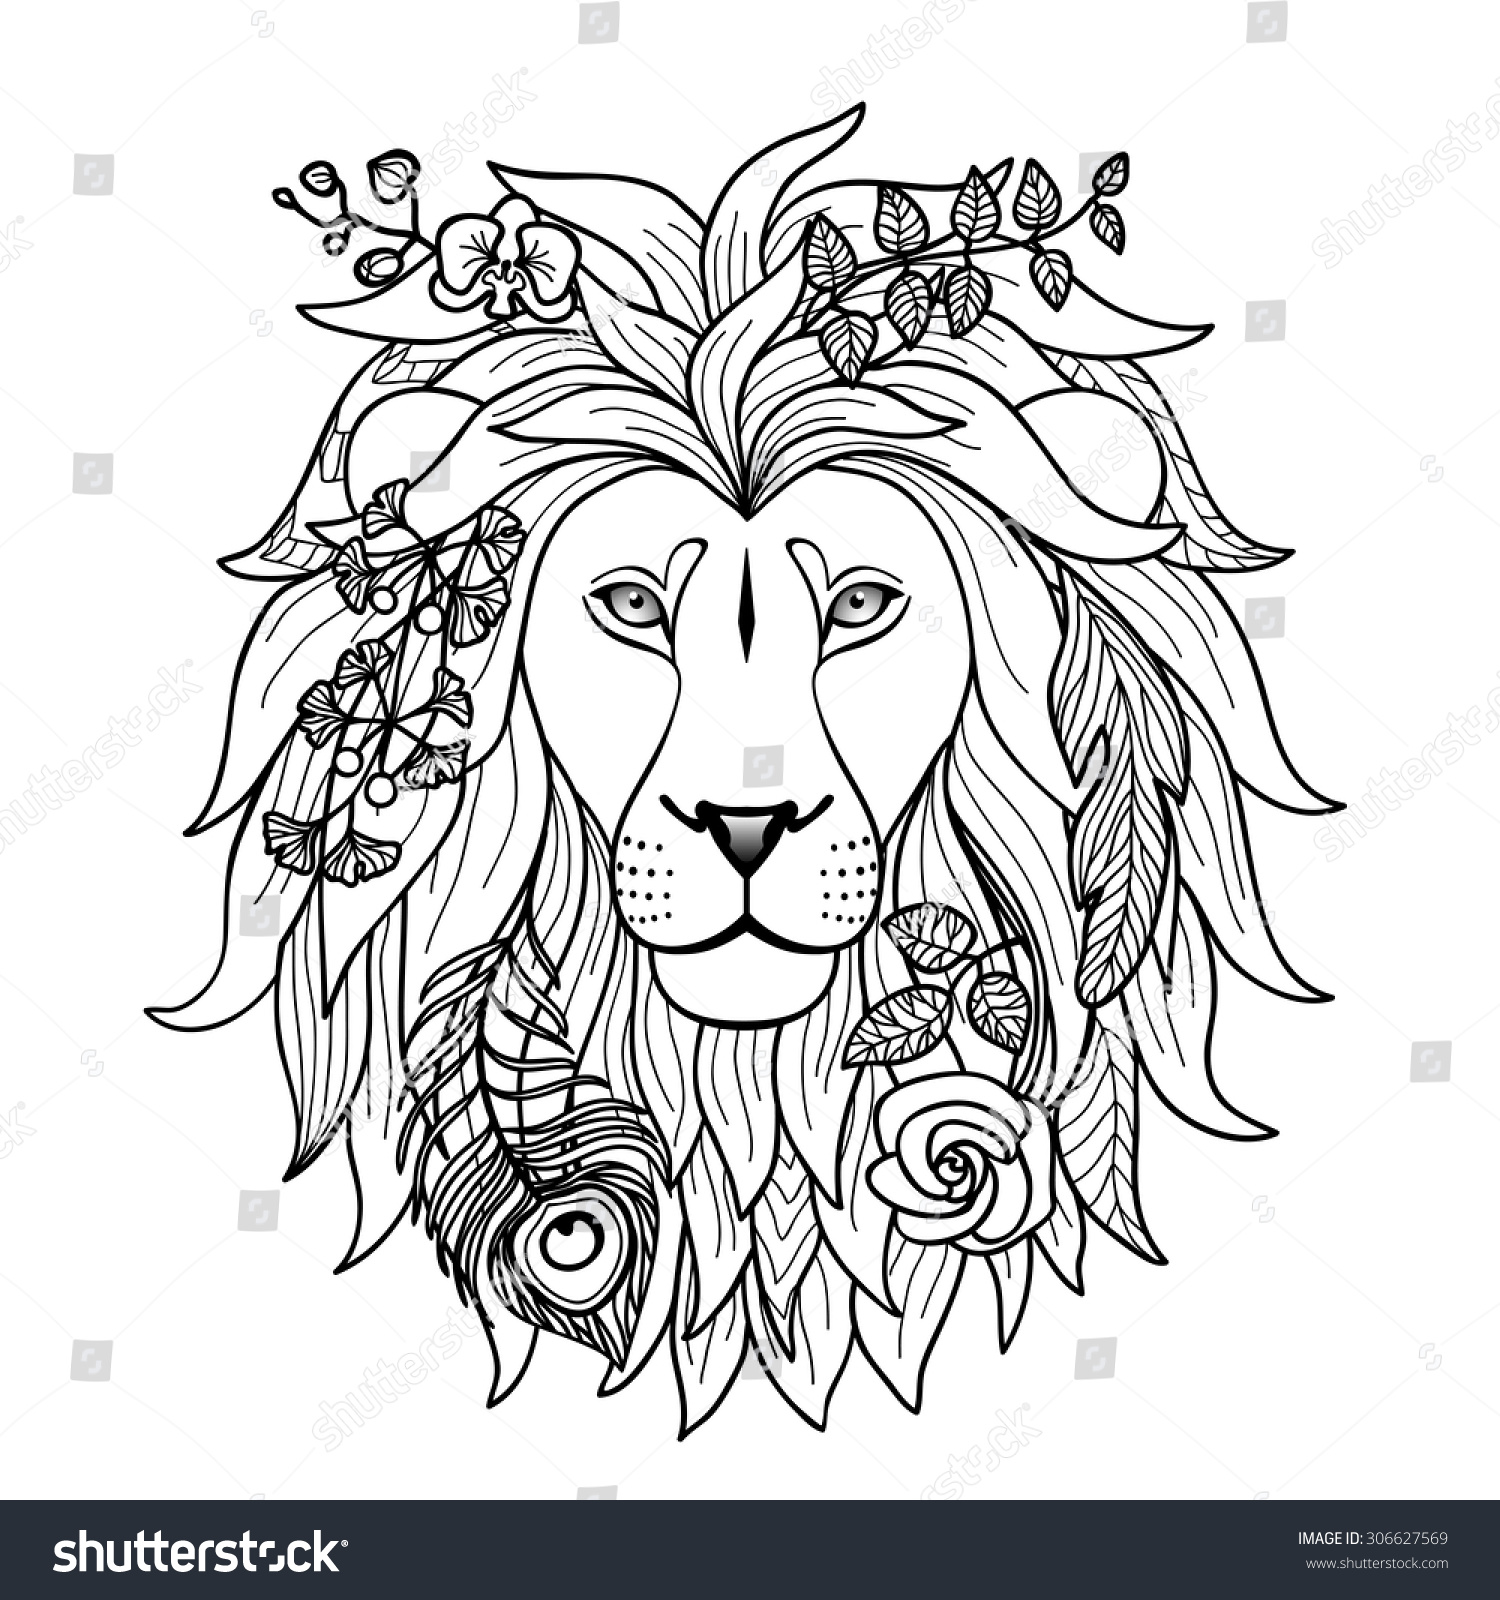 Lion Graphic Designs